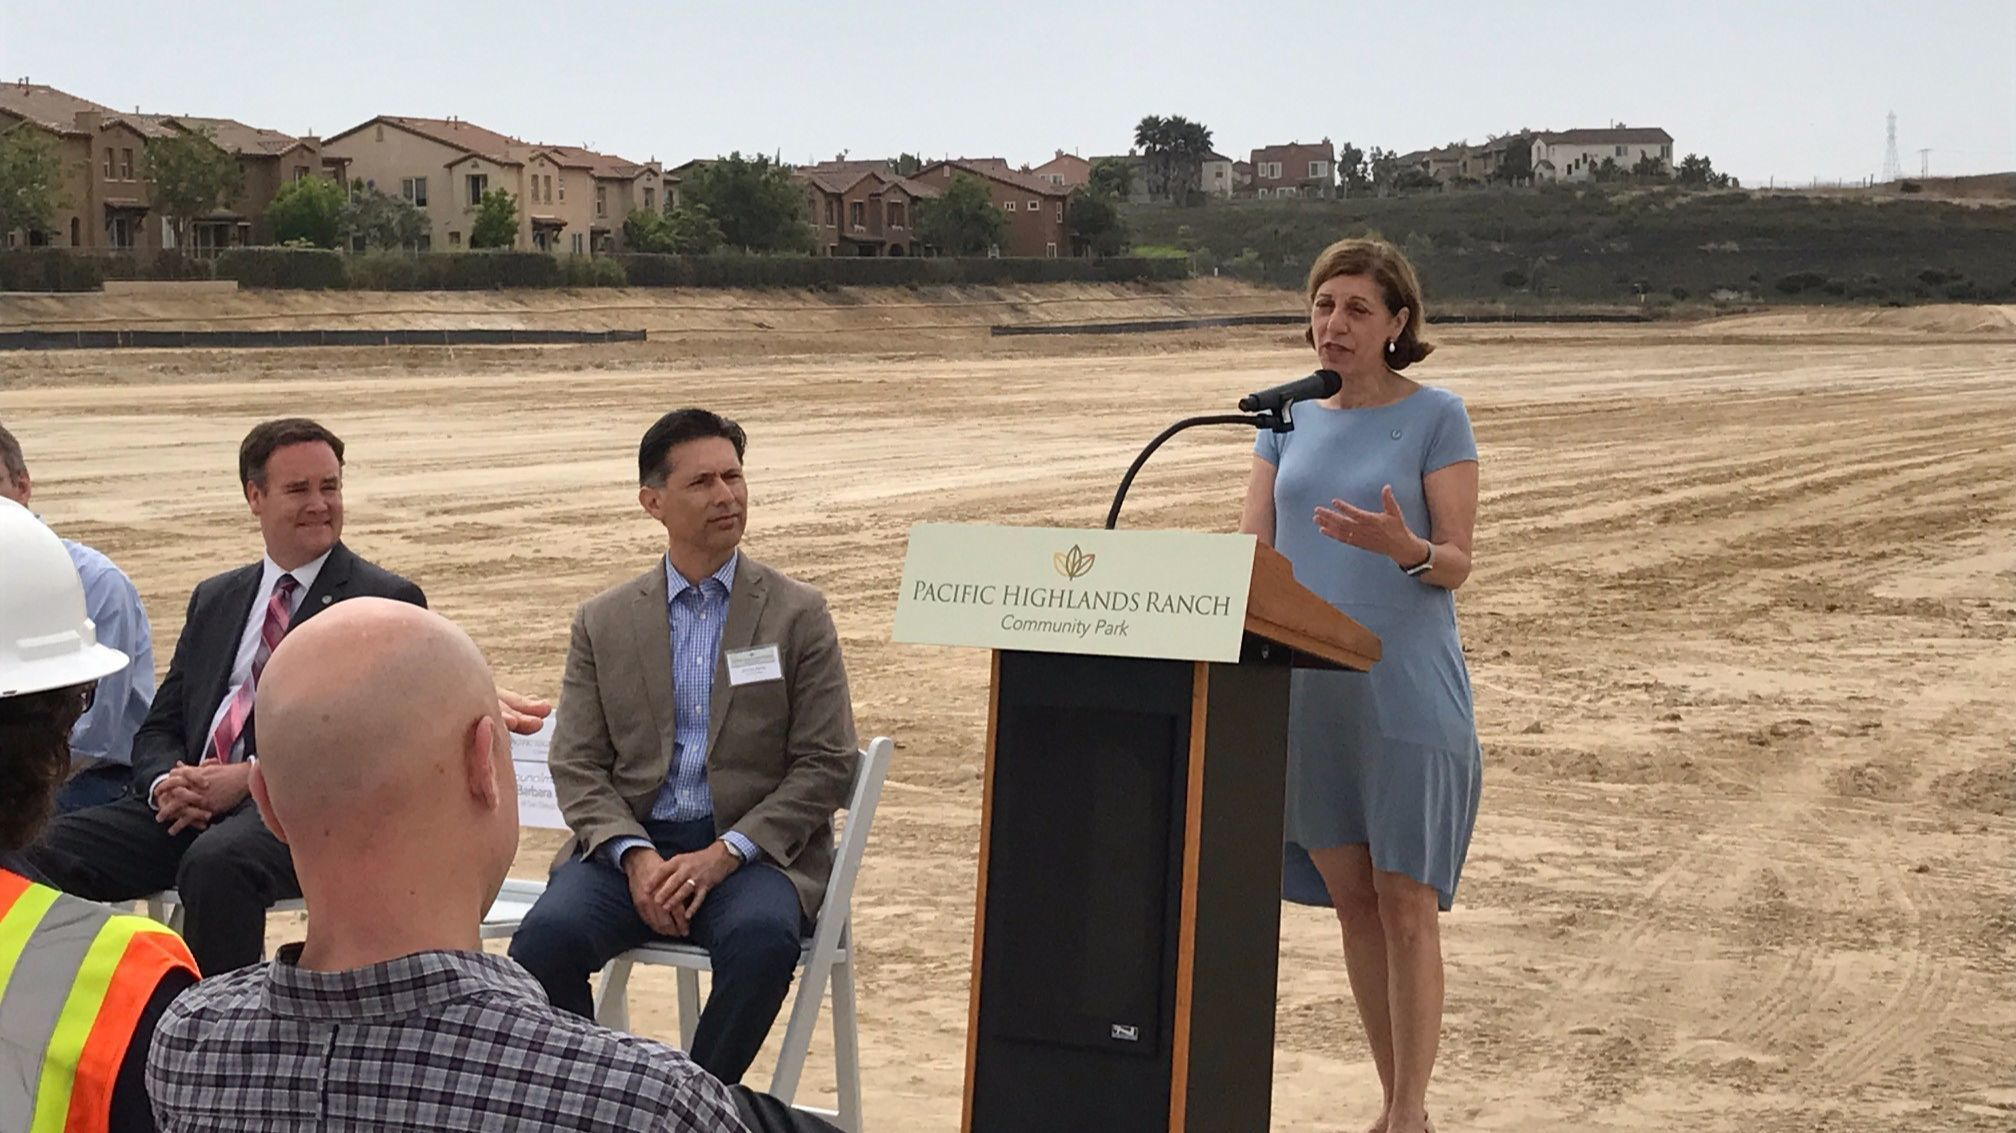 SD City Councilmember Barbara Bry speaks at the groundbreaking.